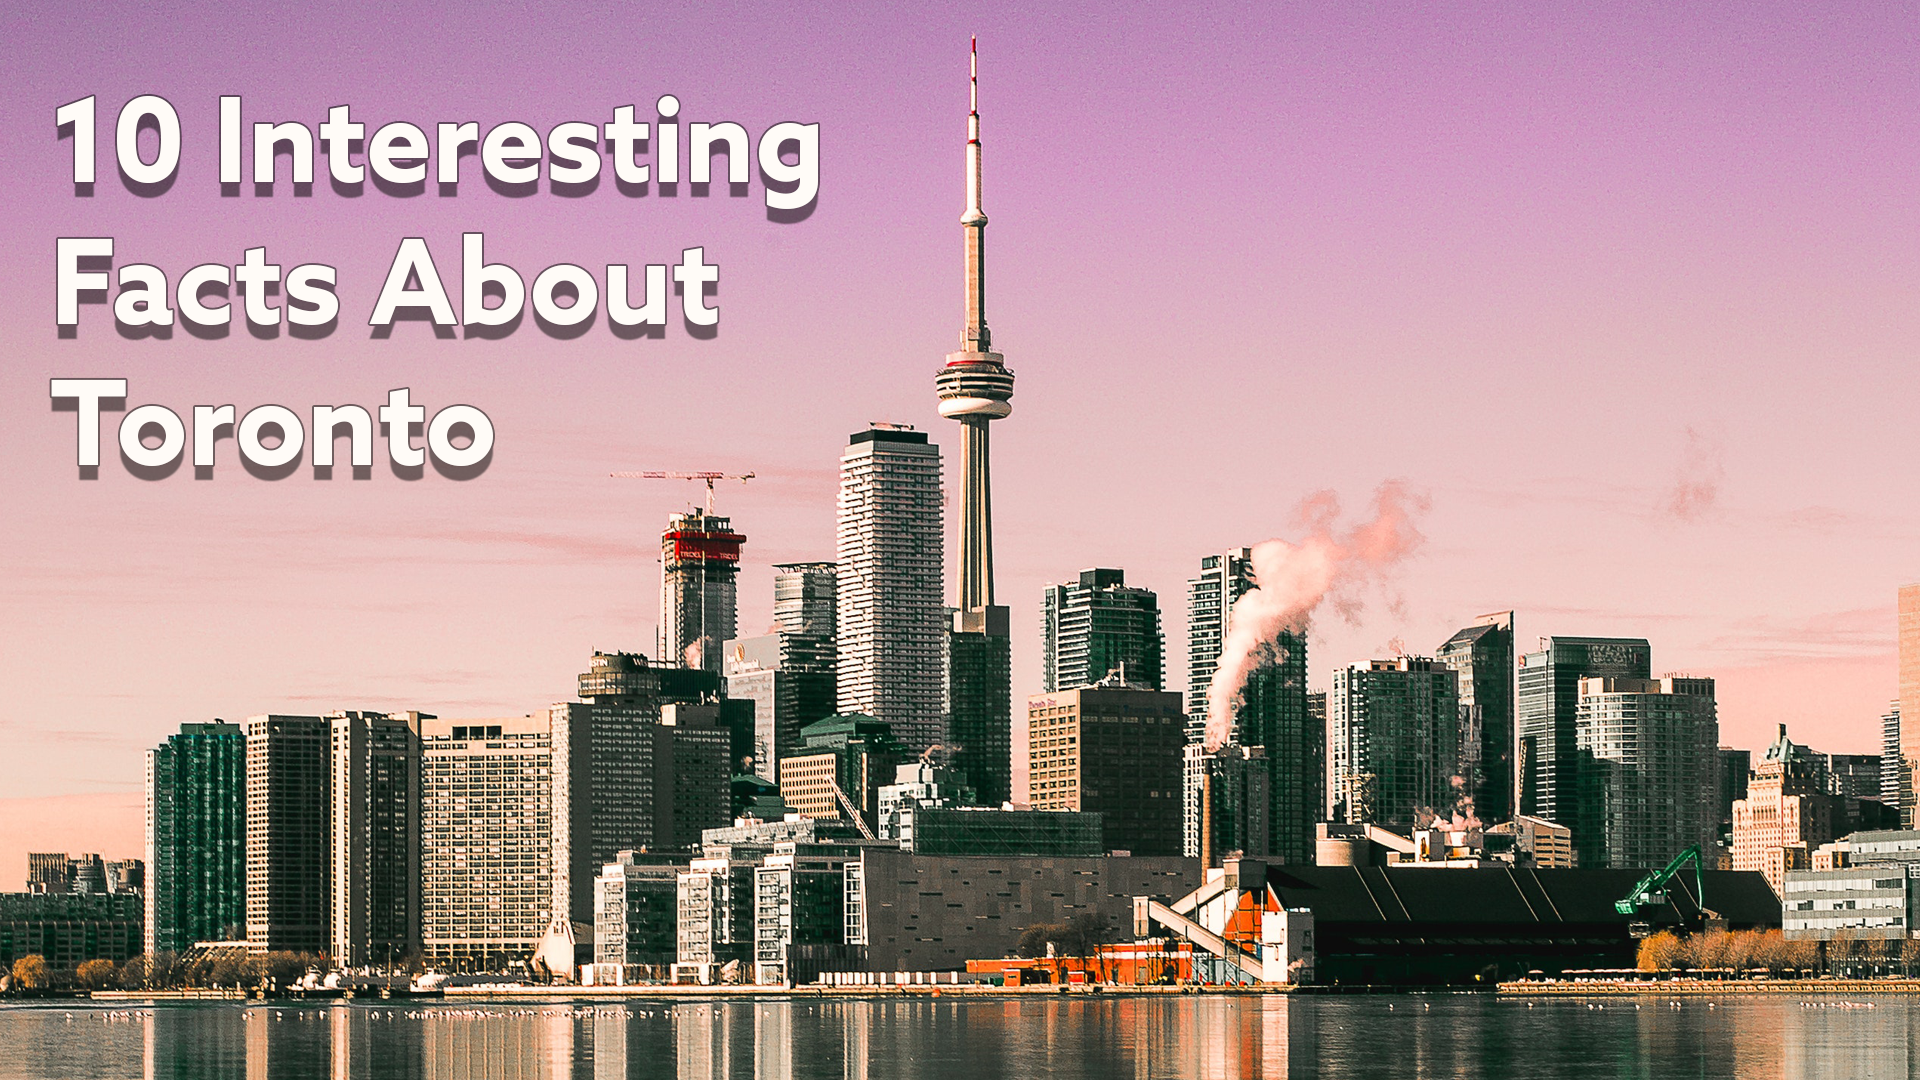 10 Interesting Facts About Toronto